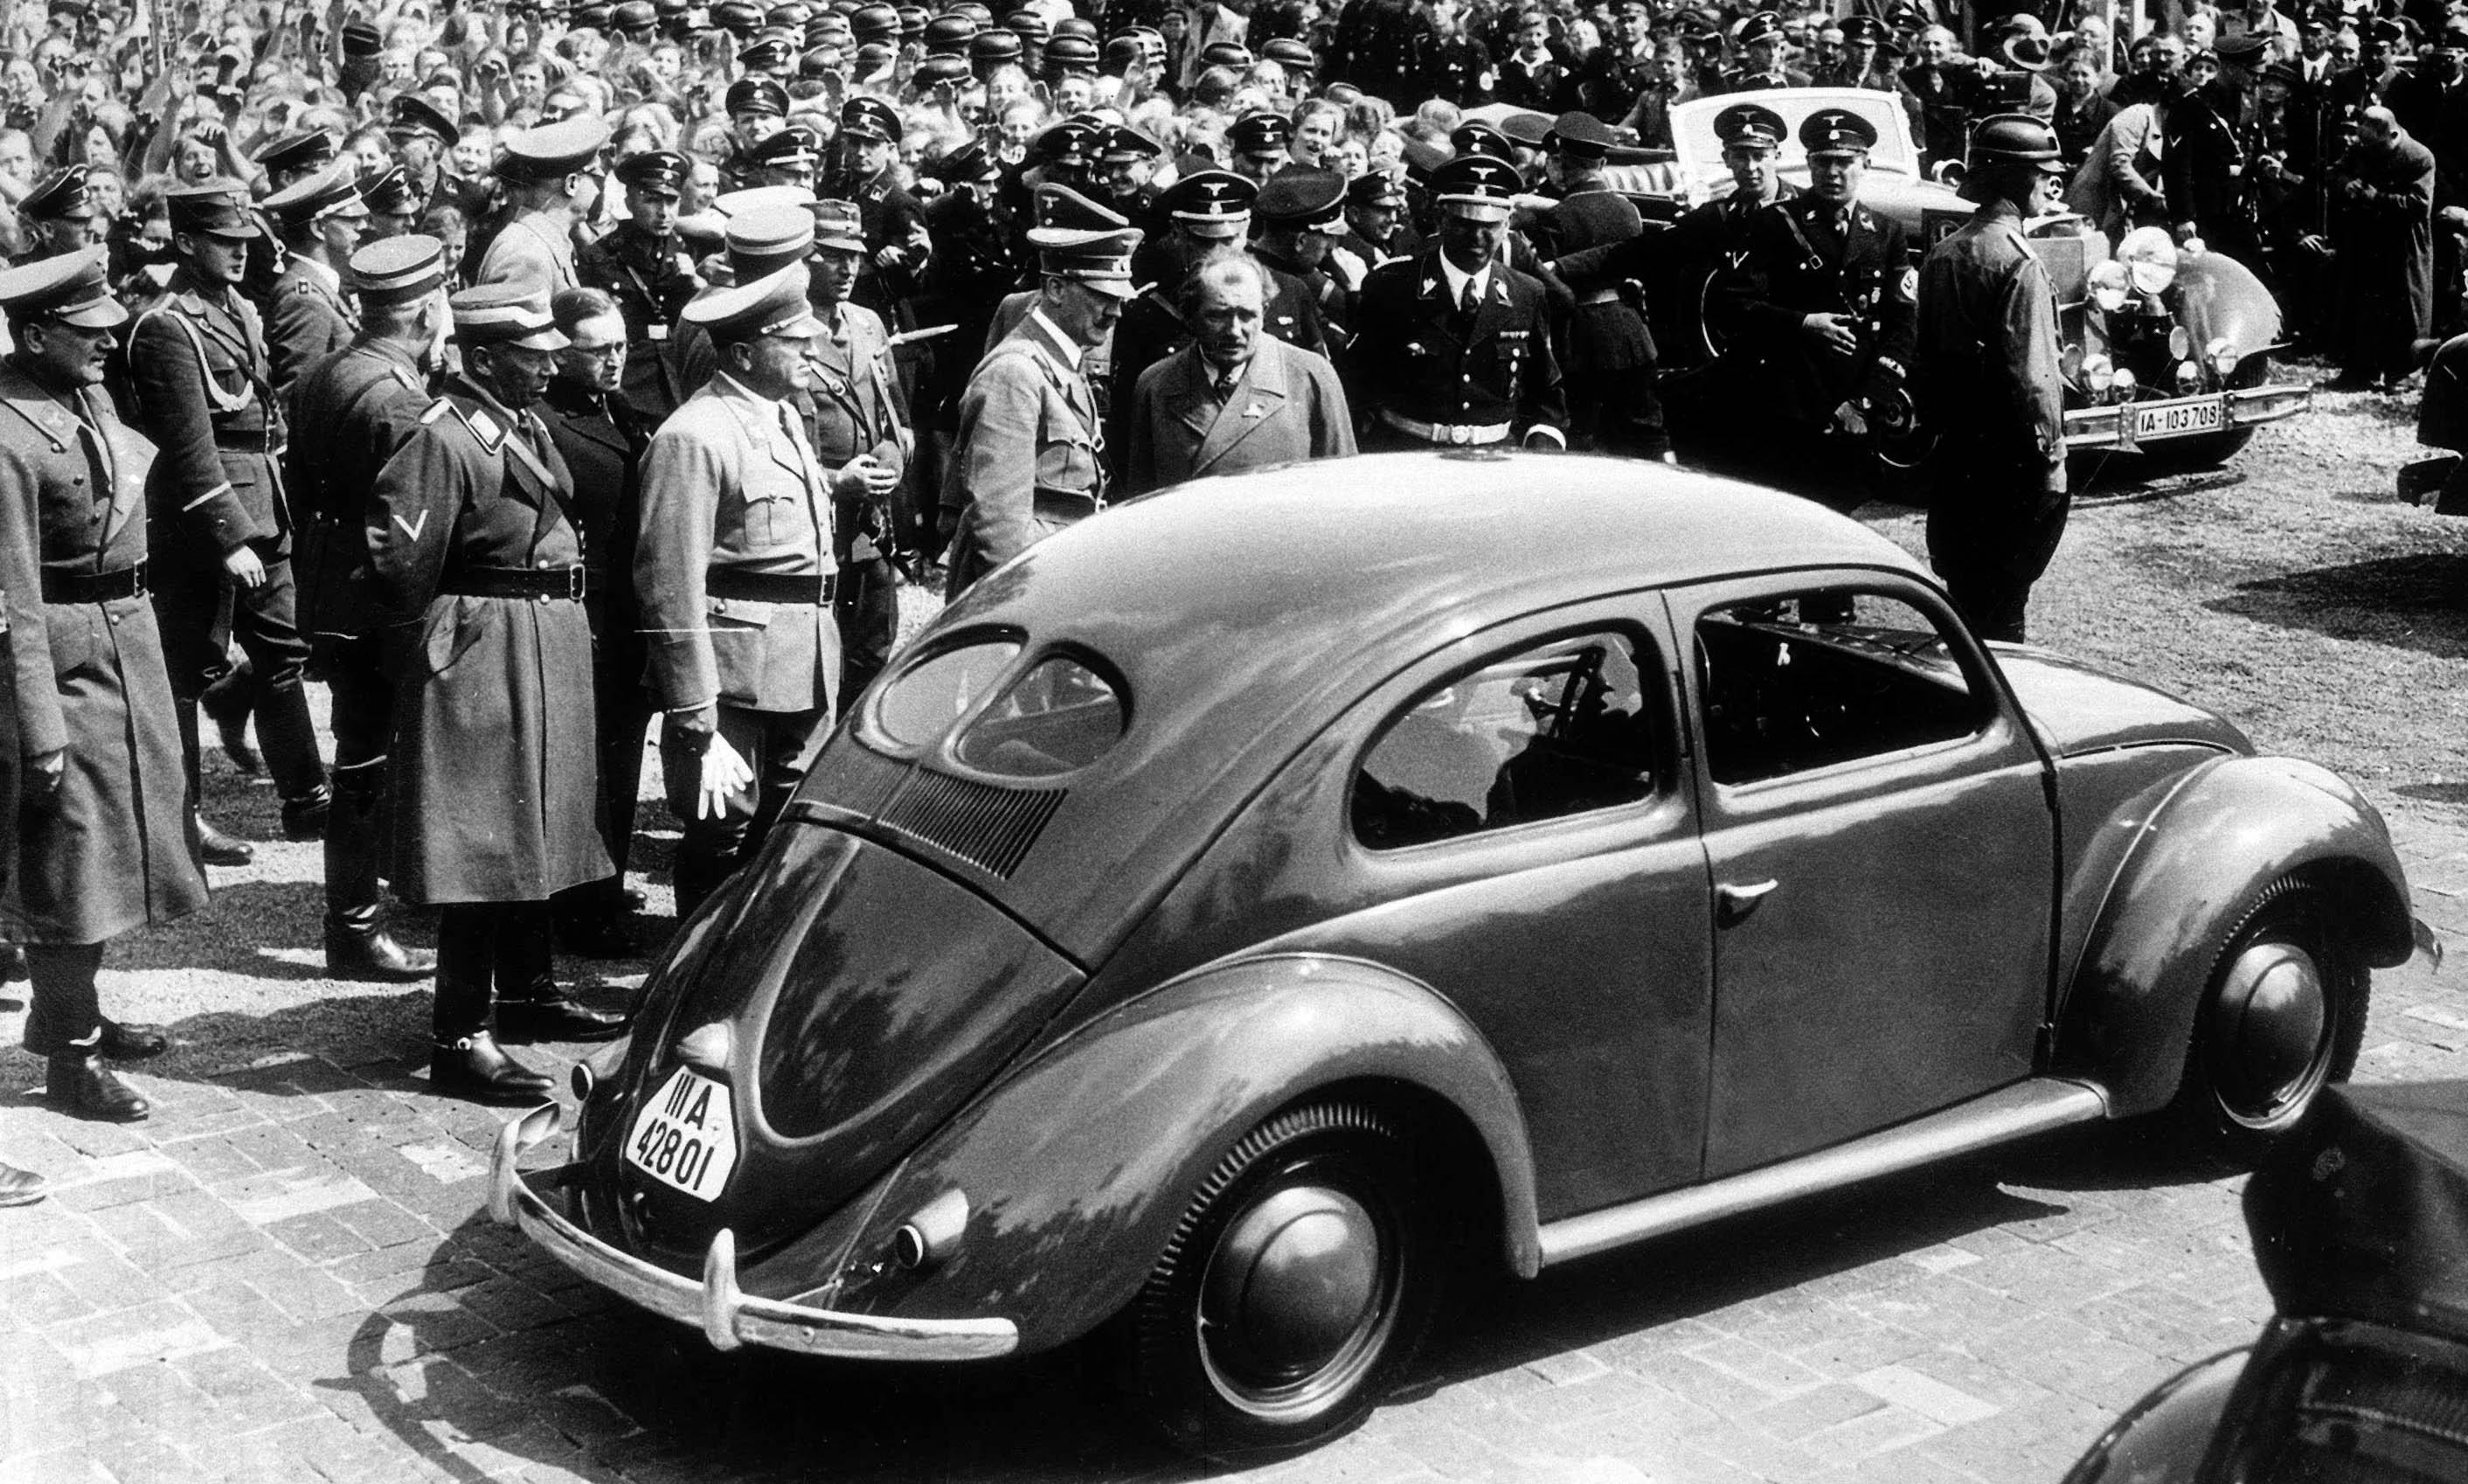 Adolf Hitler with the Volkswagen's designer, Dr Ferdinand Porsche, at the Volkswagen factory in 1938 - the same year Hitler was awarded Time Magazine's Man of the Year Award.